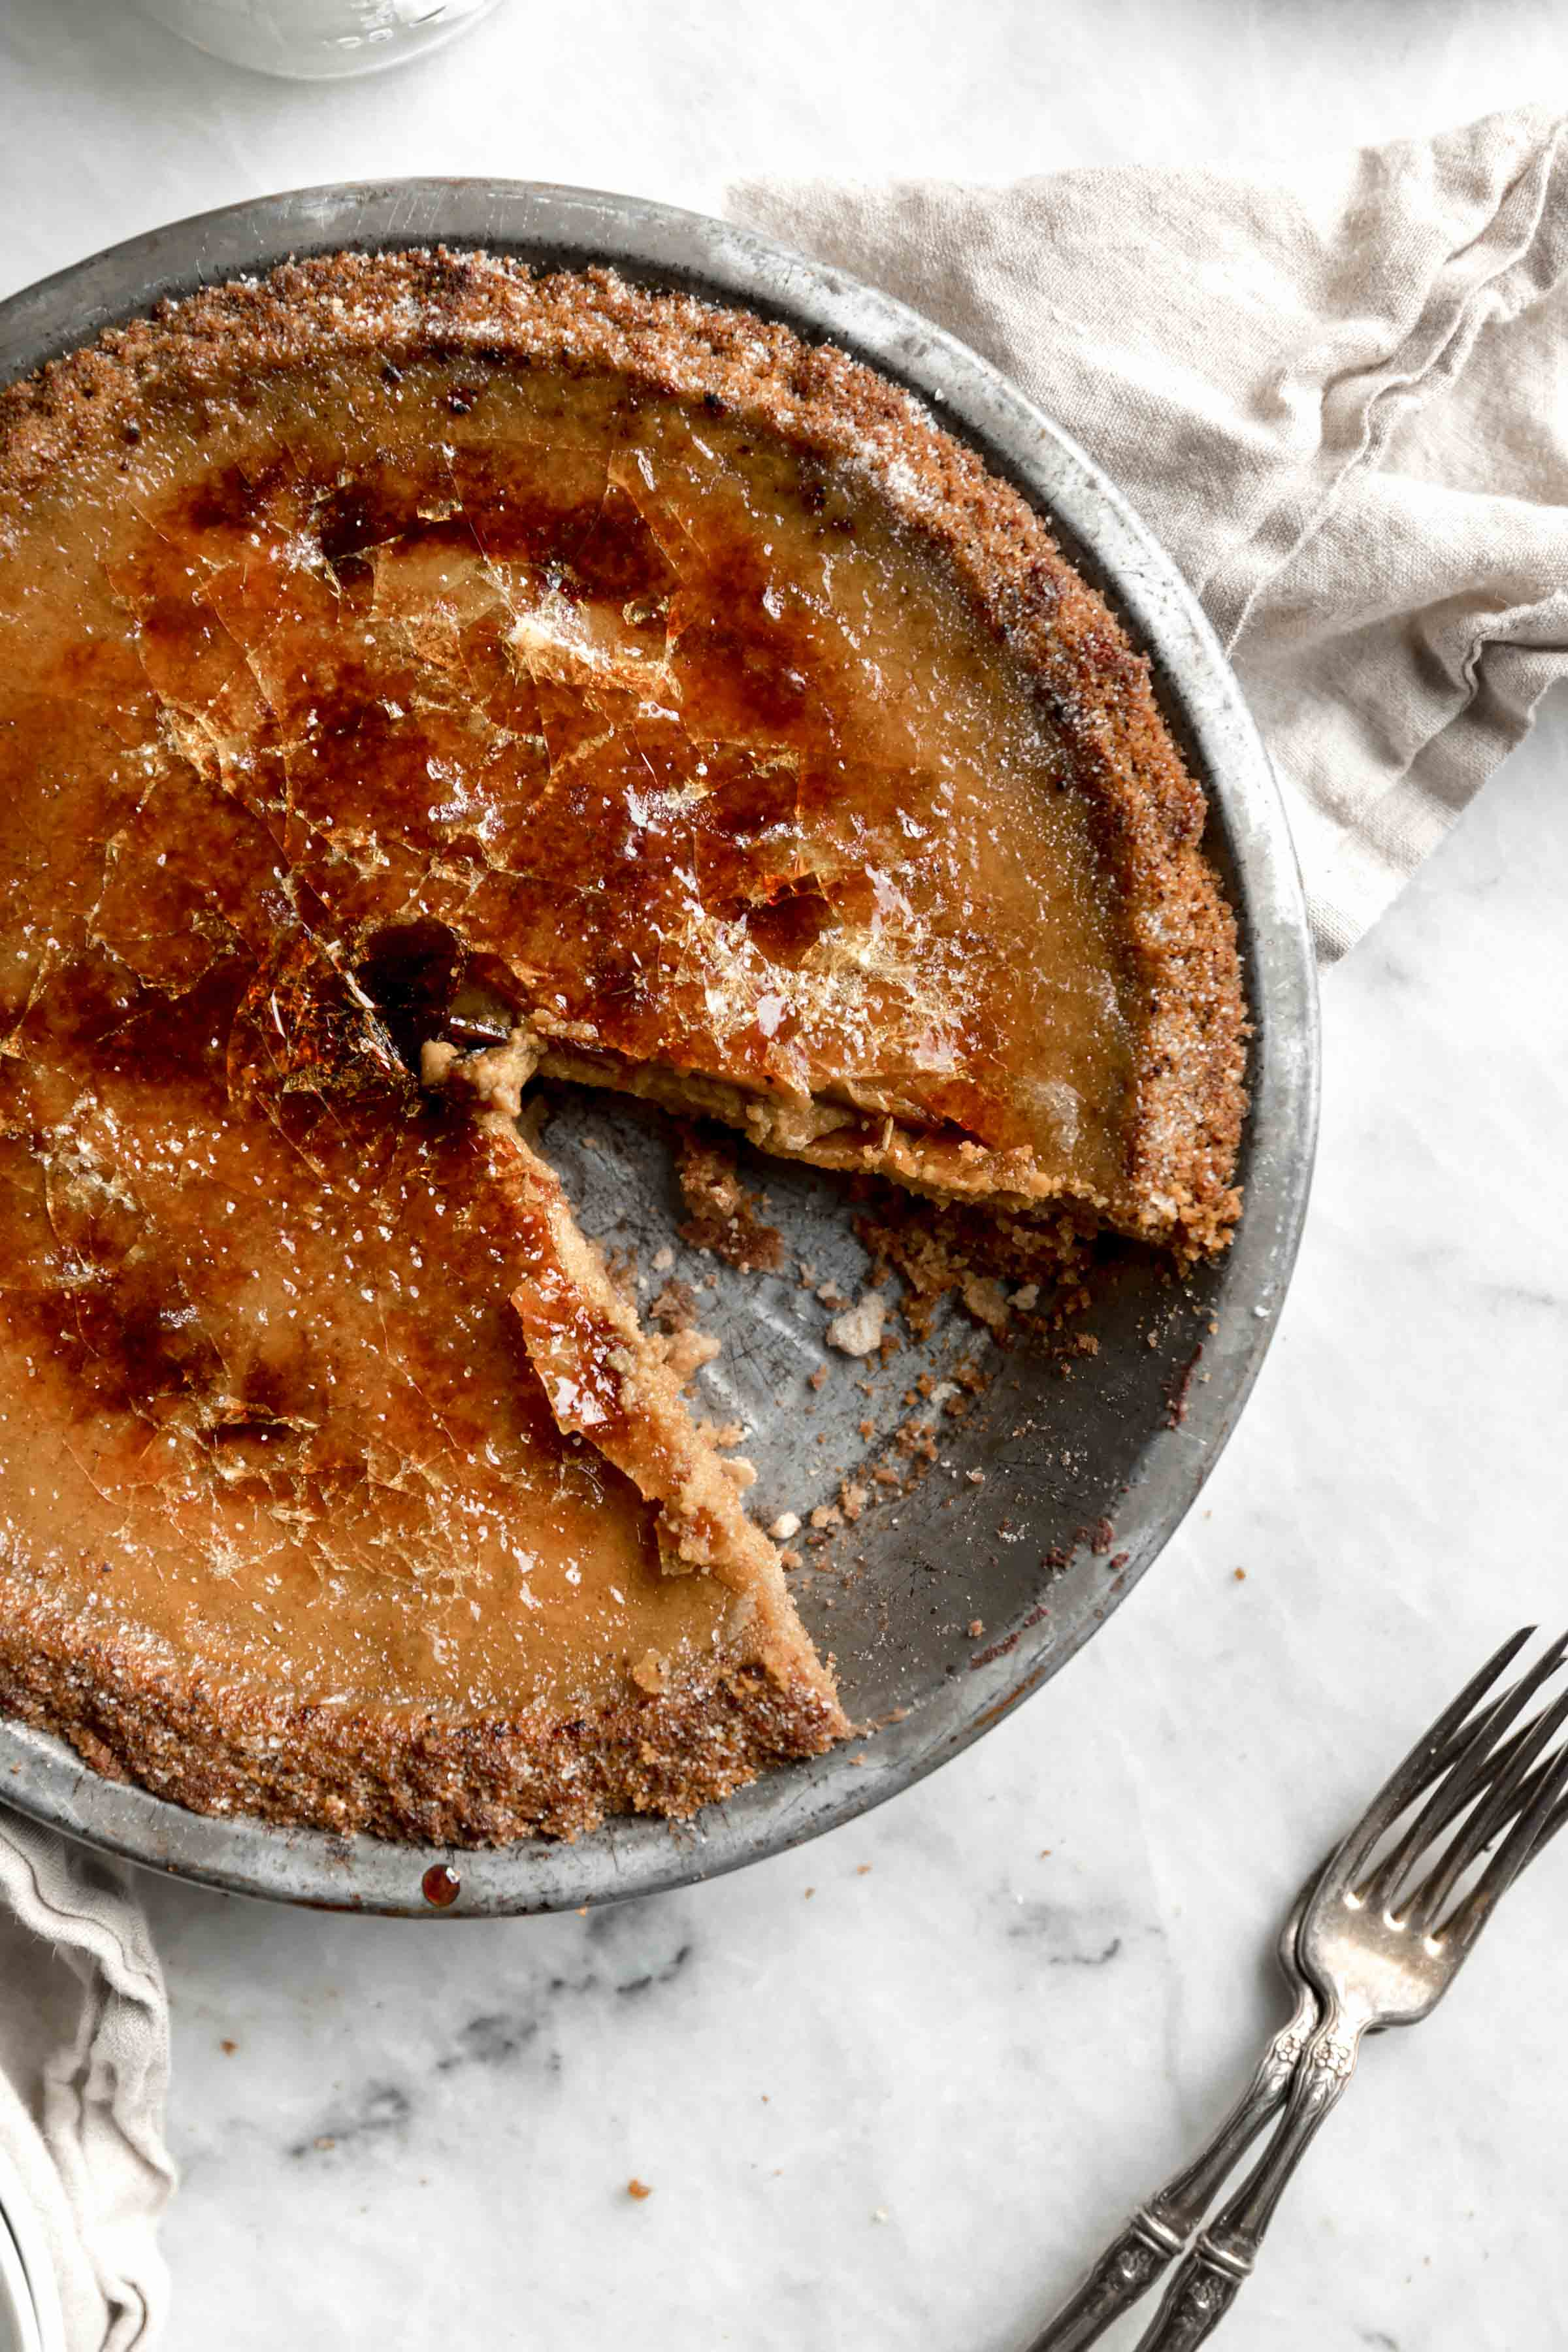 Do you like creme brûlée? Do you like pumpkin pie? Introducing new favorite dessert: Brûléed Pumpkin Pie. Creamy, crunchy, and perf for Thanksgiving!